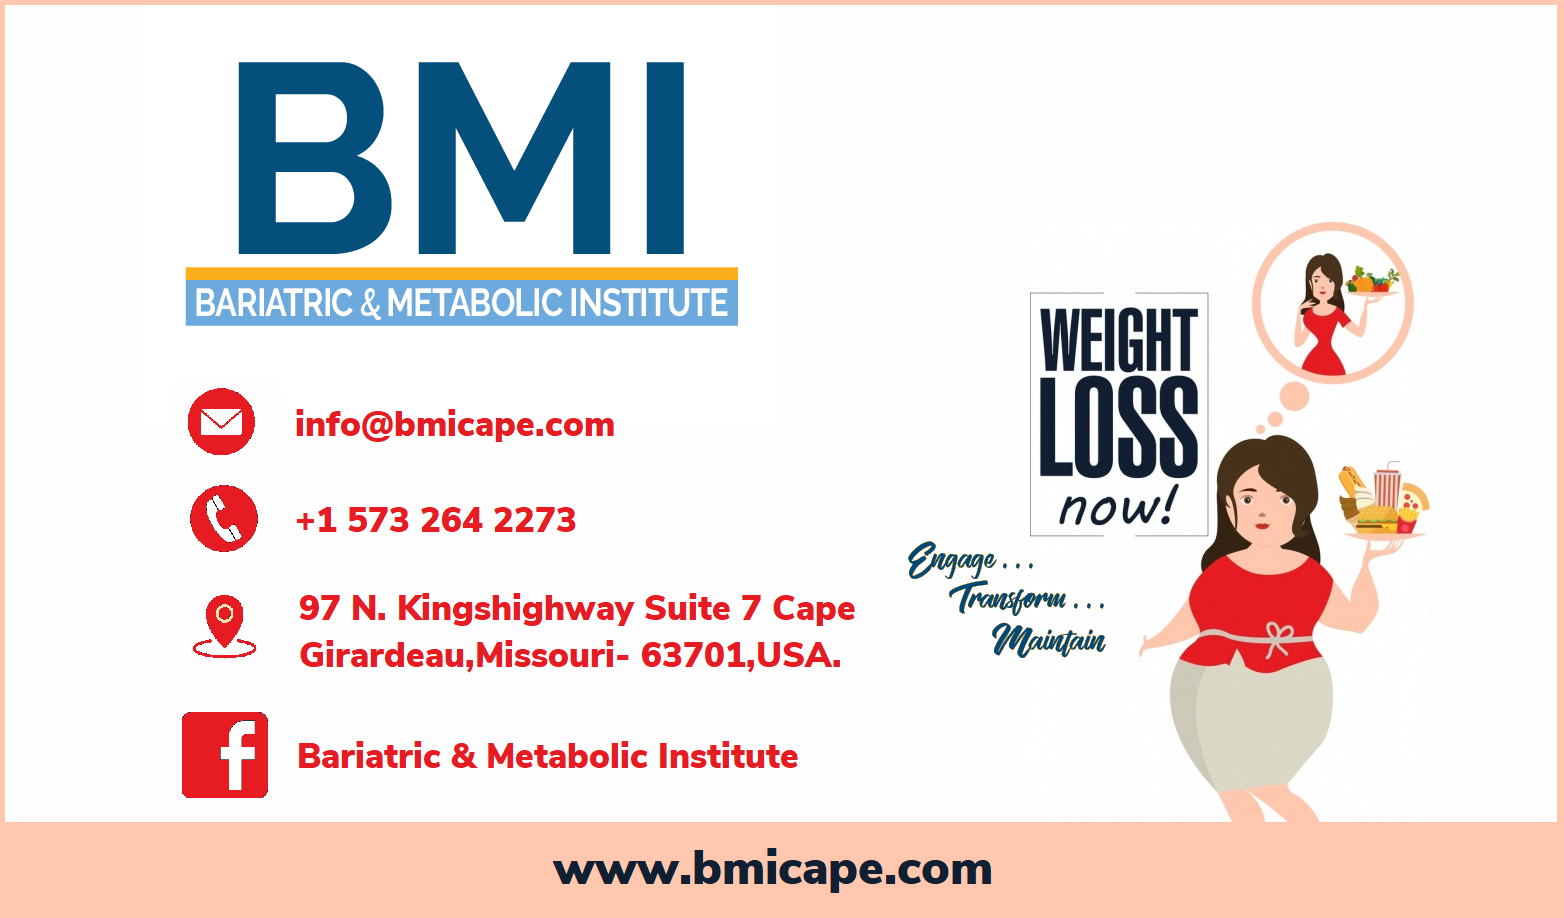 Bariatric & Metabolic Institute (BMICAPE) is YOUR